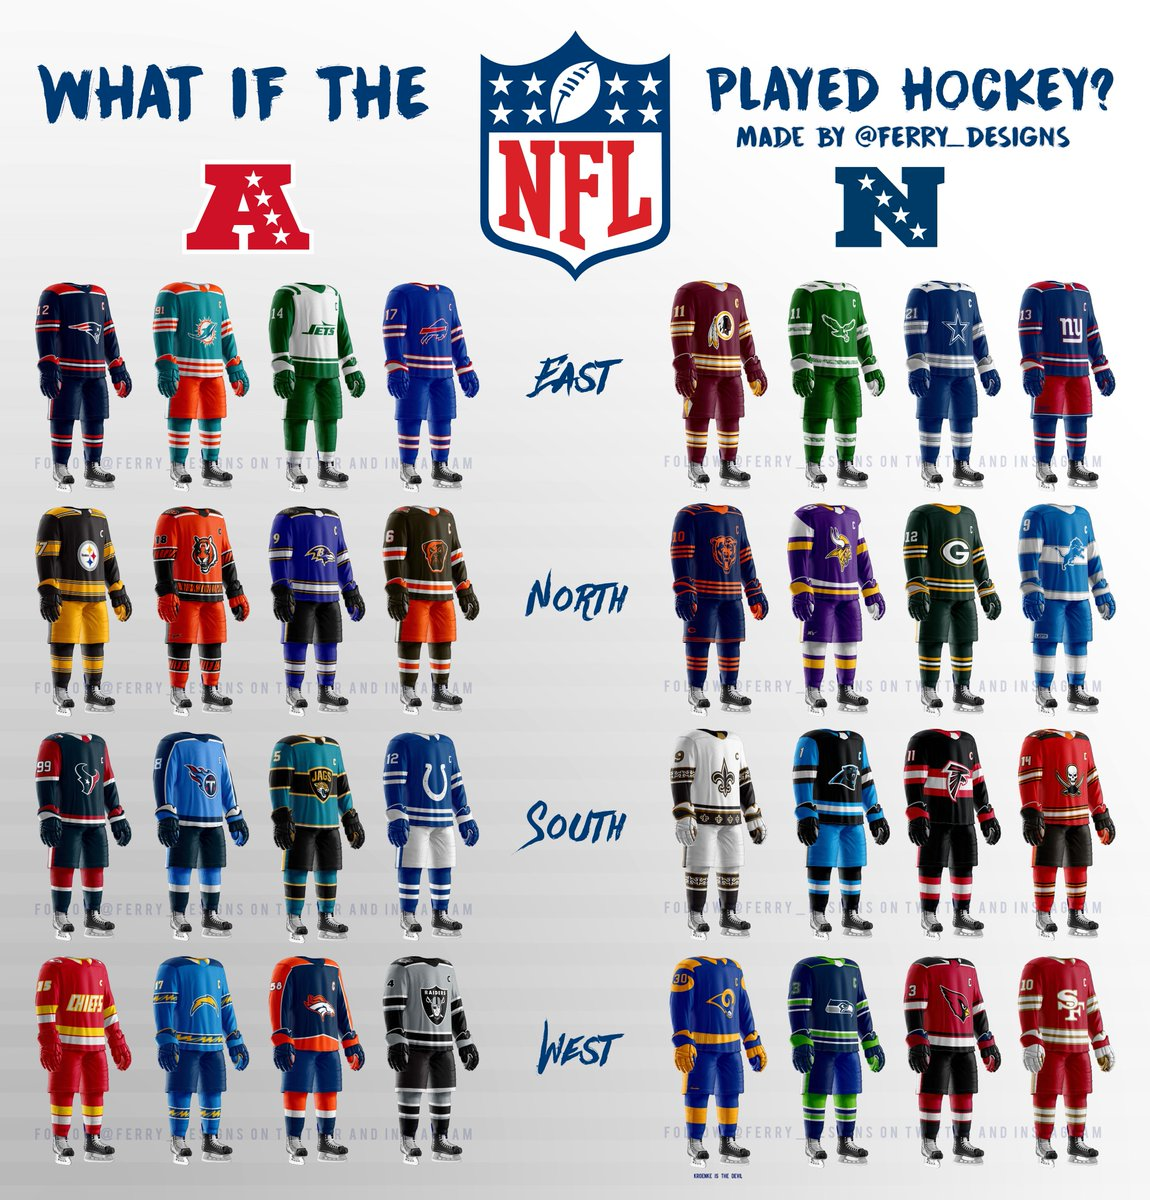 Feed Me Nfl: What If The NFL Played Hockey Instead? : Hockey